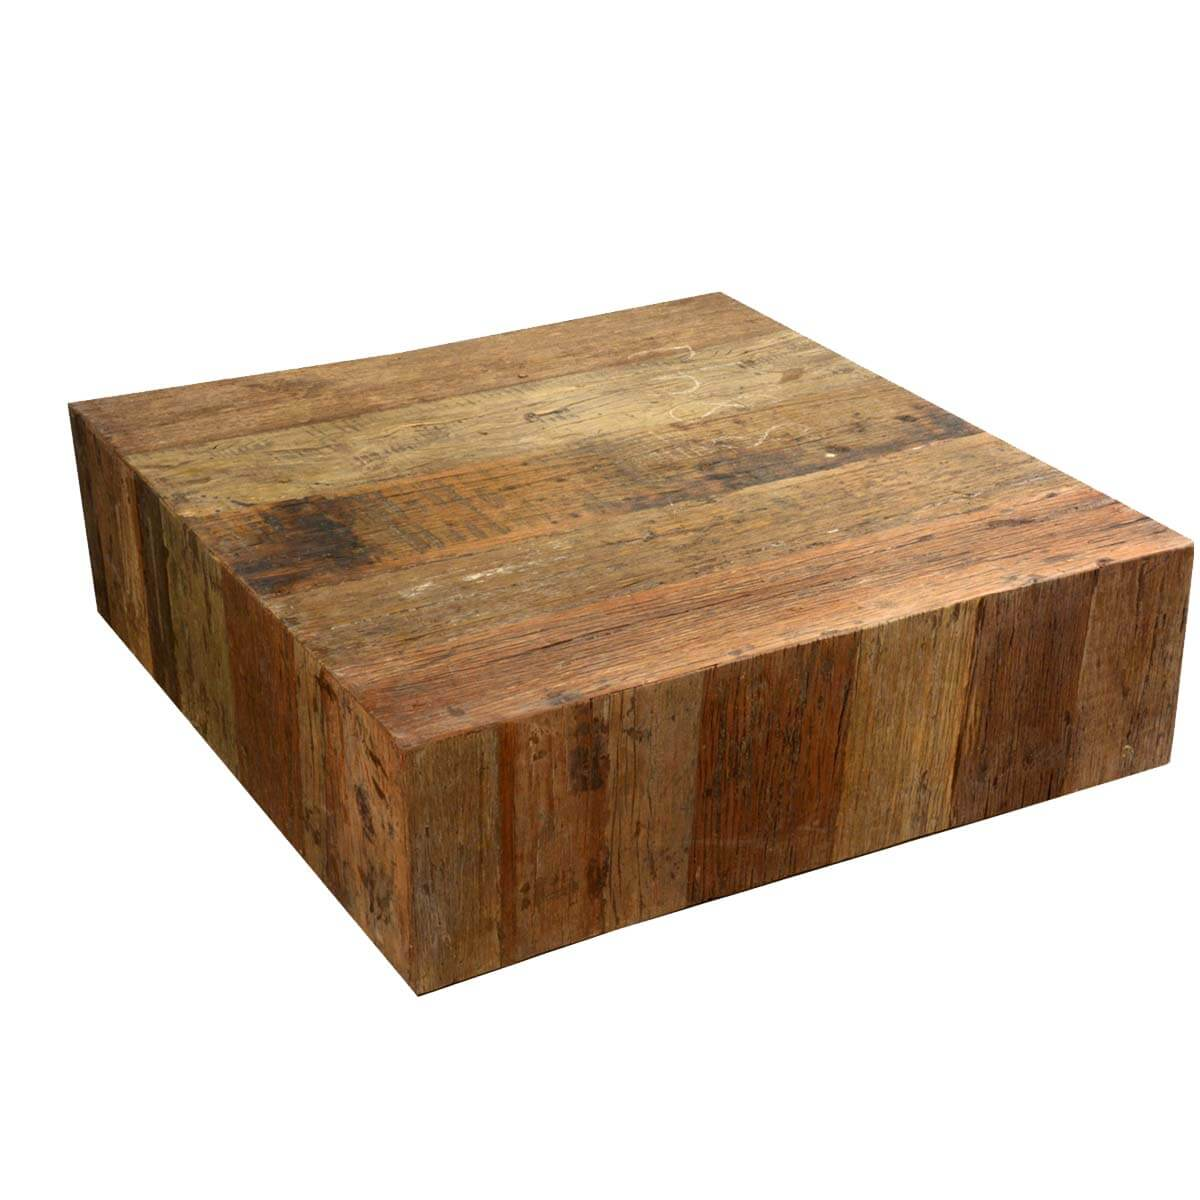 Appalachian rustic railroad wood square box style coffee table Rustic wooden coffee tables